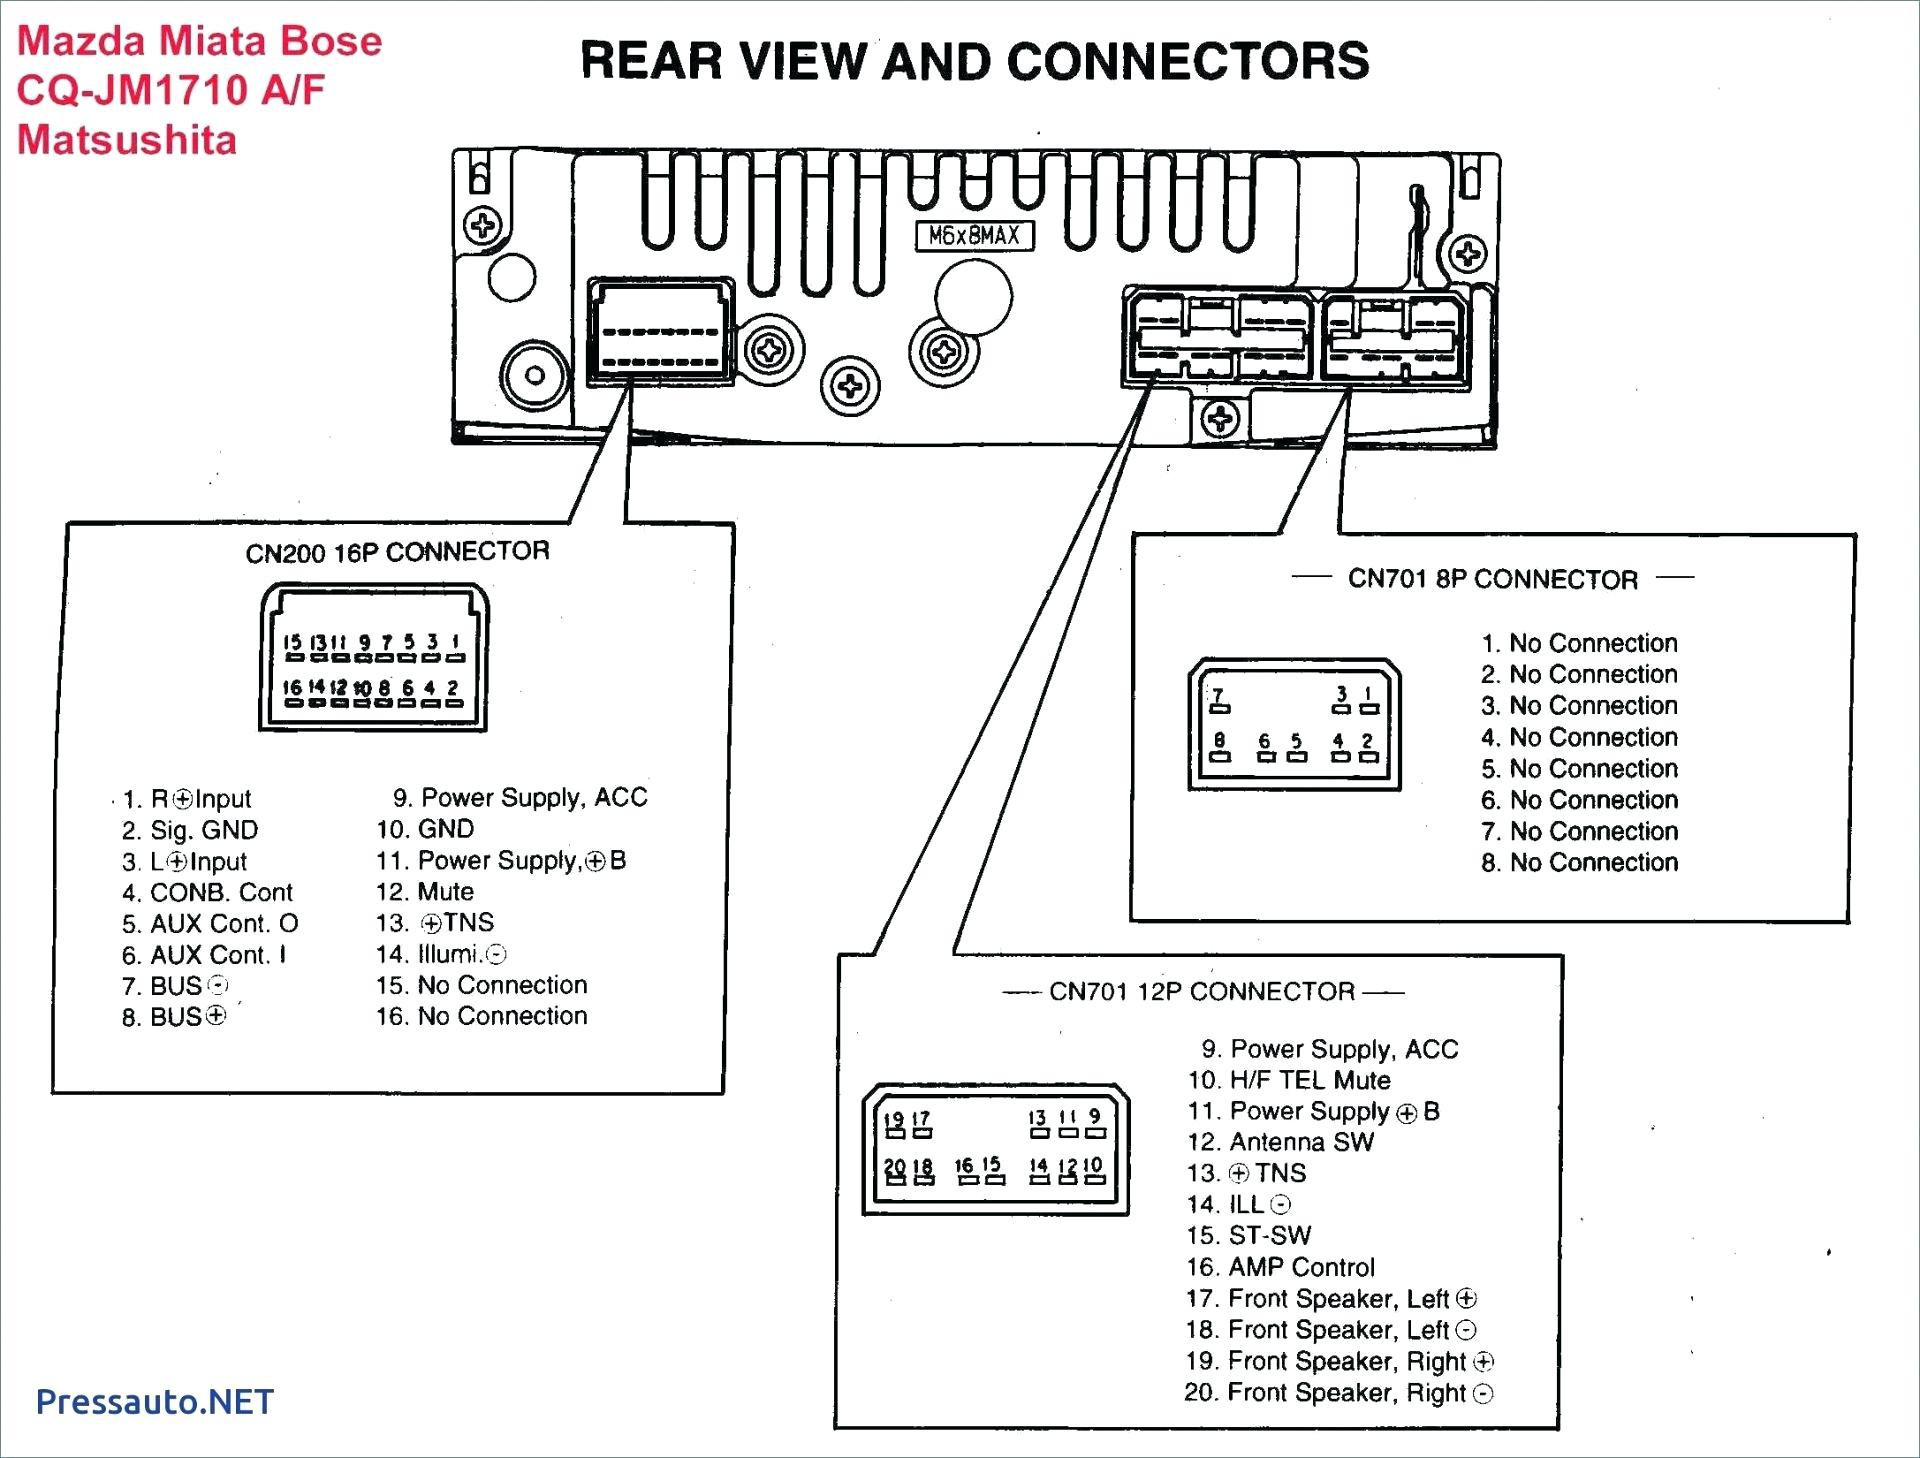 DIAGRAM] Rockford Fosgate 5 Channel Amp Wiring Diagram FULL Version HD  Quality Wiring Diagram - DIAGRAMAPLAY.CLUB-RONSARD.FRClub Ronsard